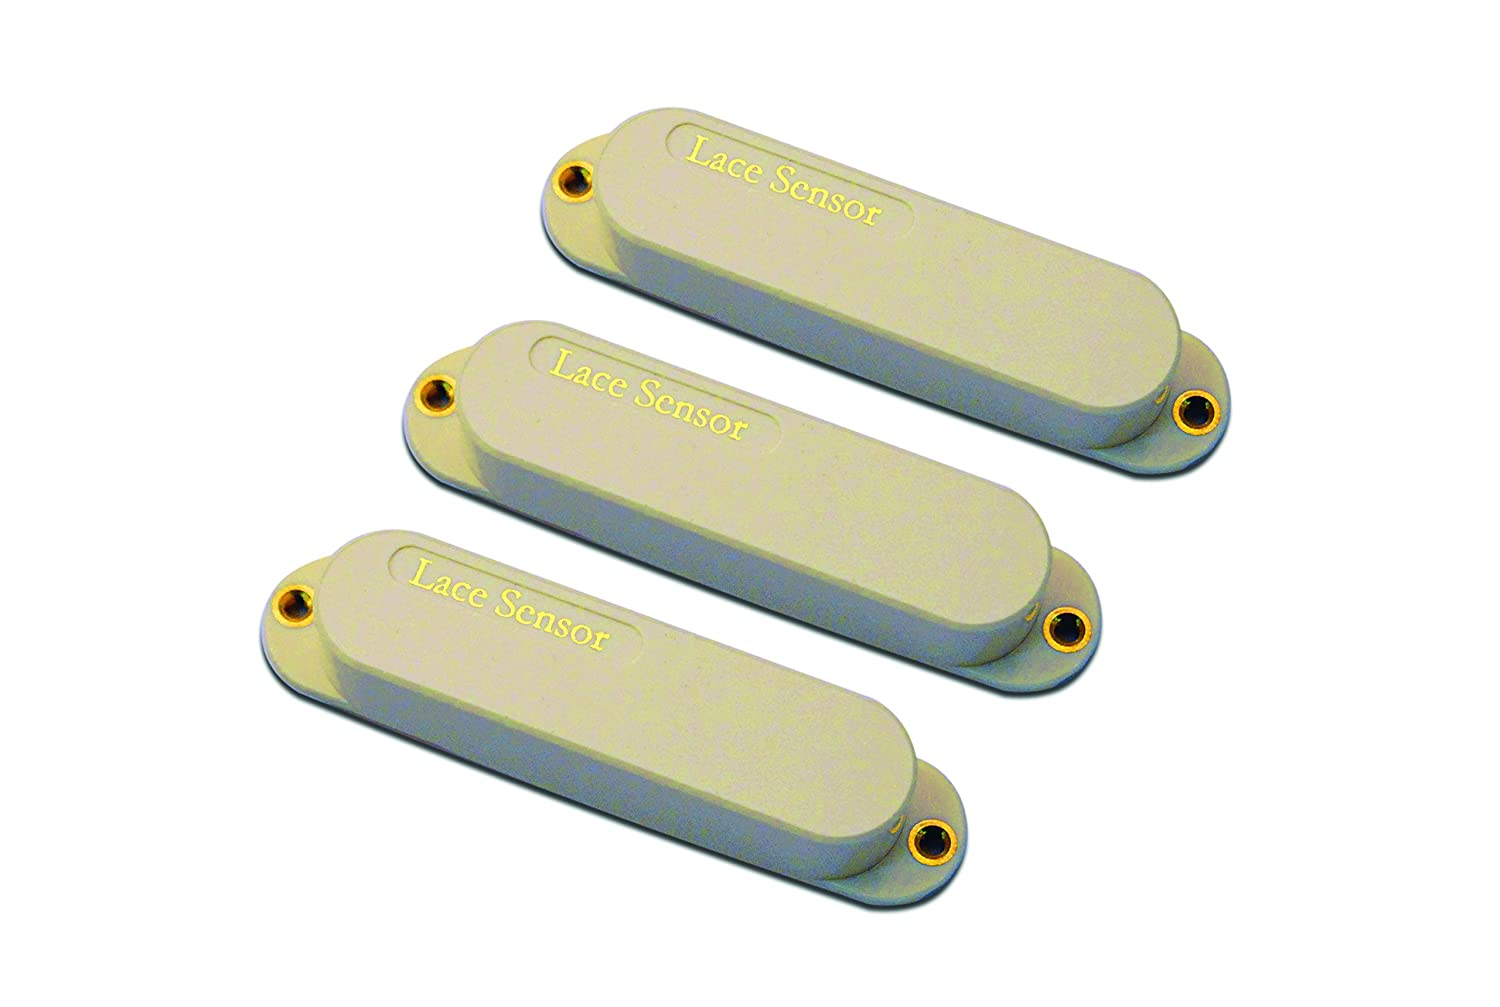 Lace Sensor 44517-03 Gold 3-Pack Cream Cover Electric Guitar Electronics